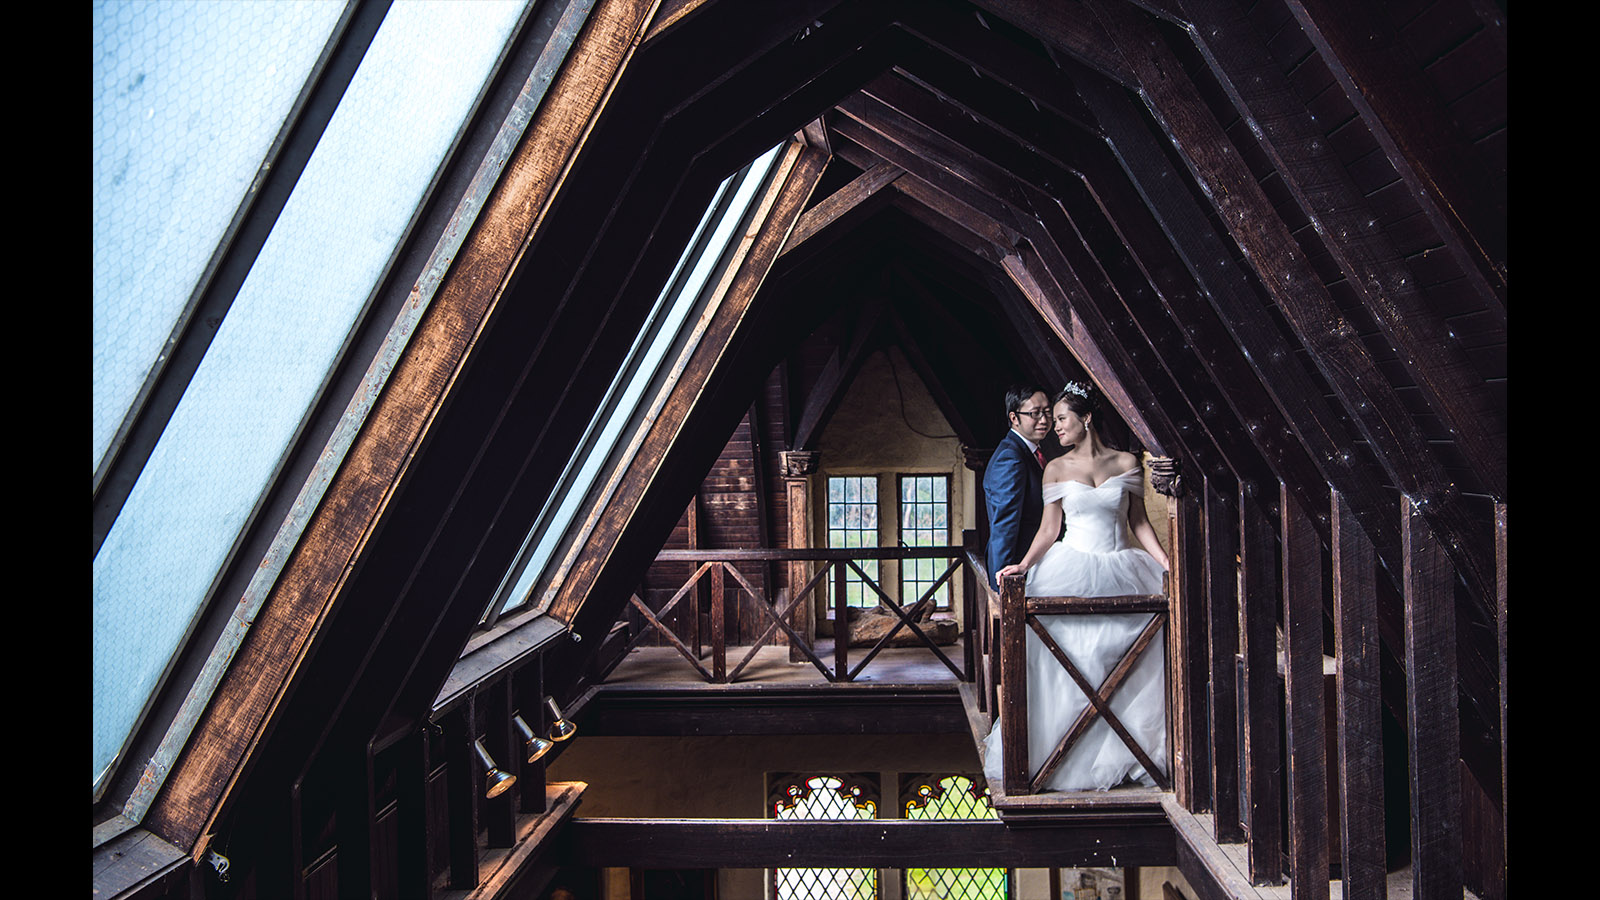 Bride-and-groom-in-the-Montsalvat-attic